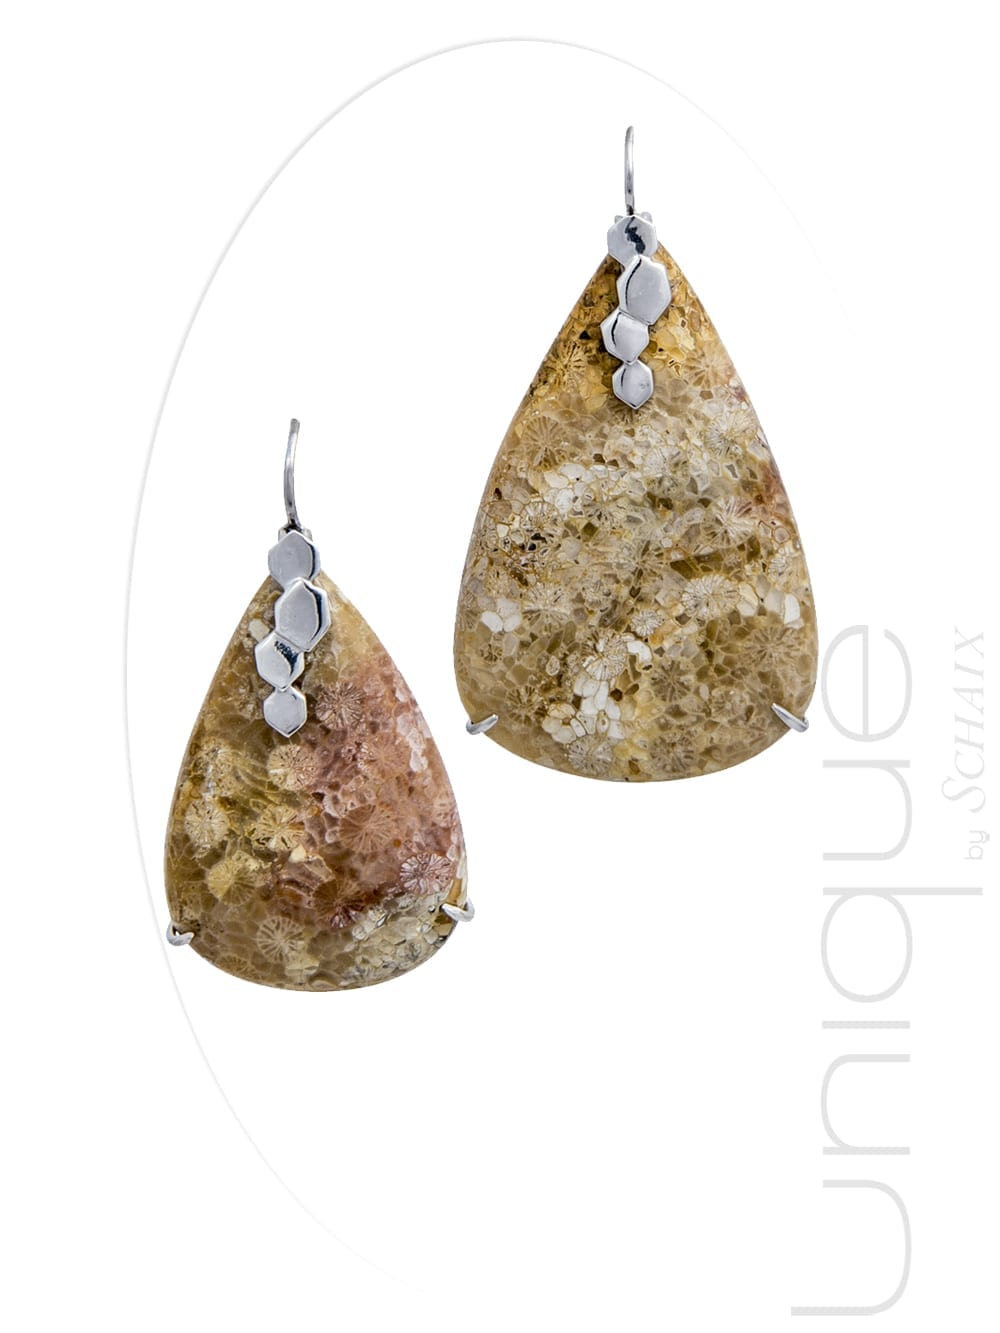 Asymmetric pear-shaped earrings made of fossil coral and silver.